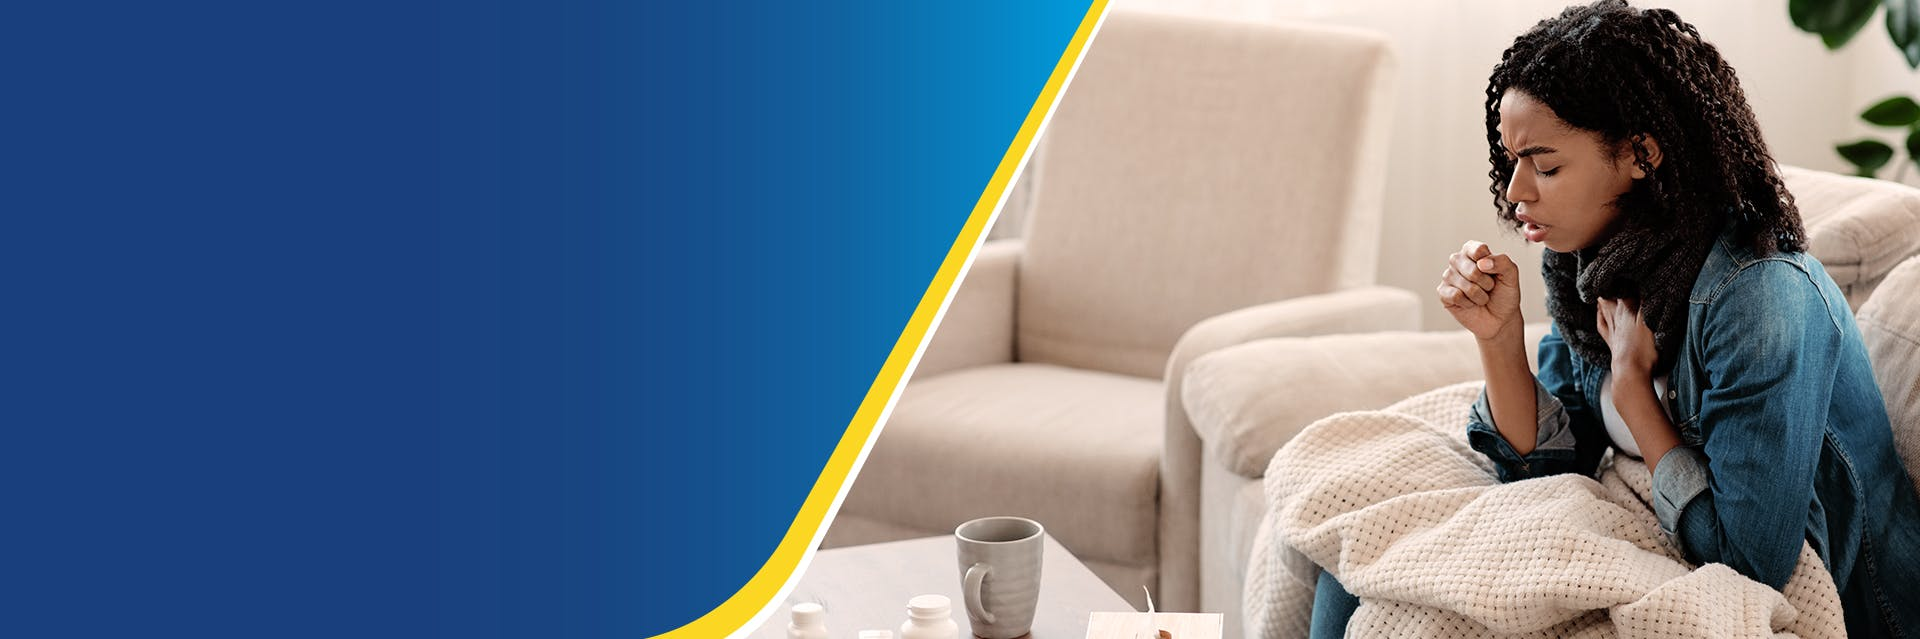 A woman is sitting on a sofa with a blanket on her lap. She is coughing into her hand